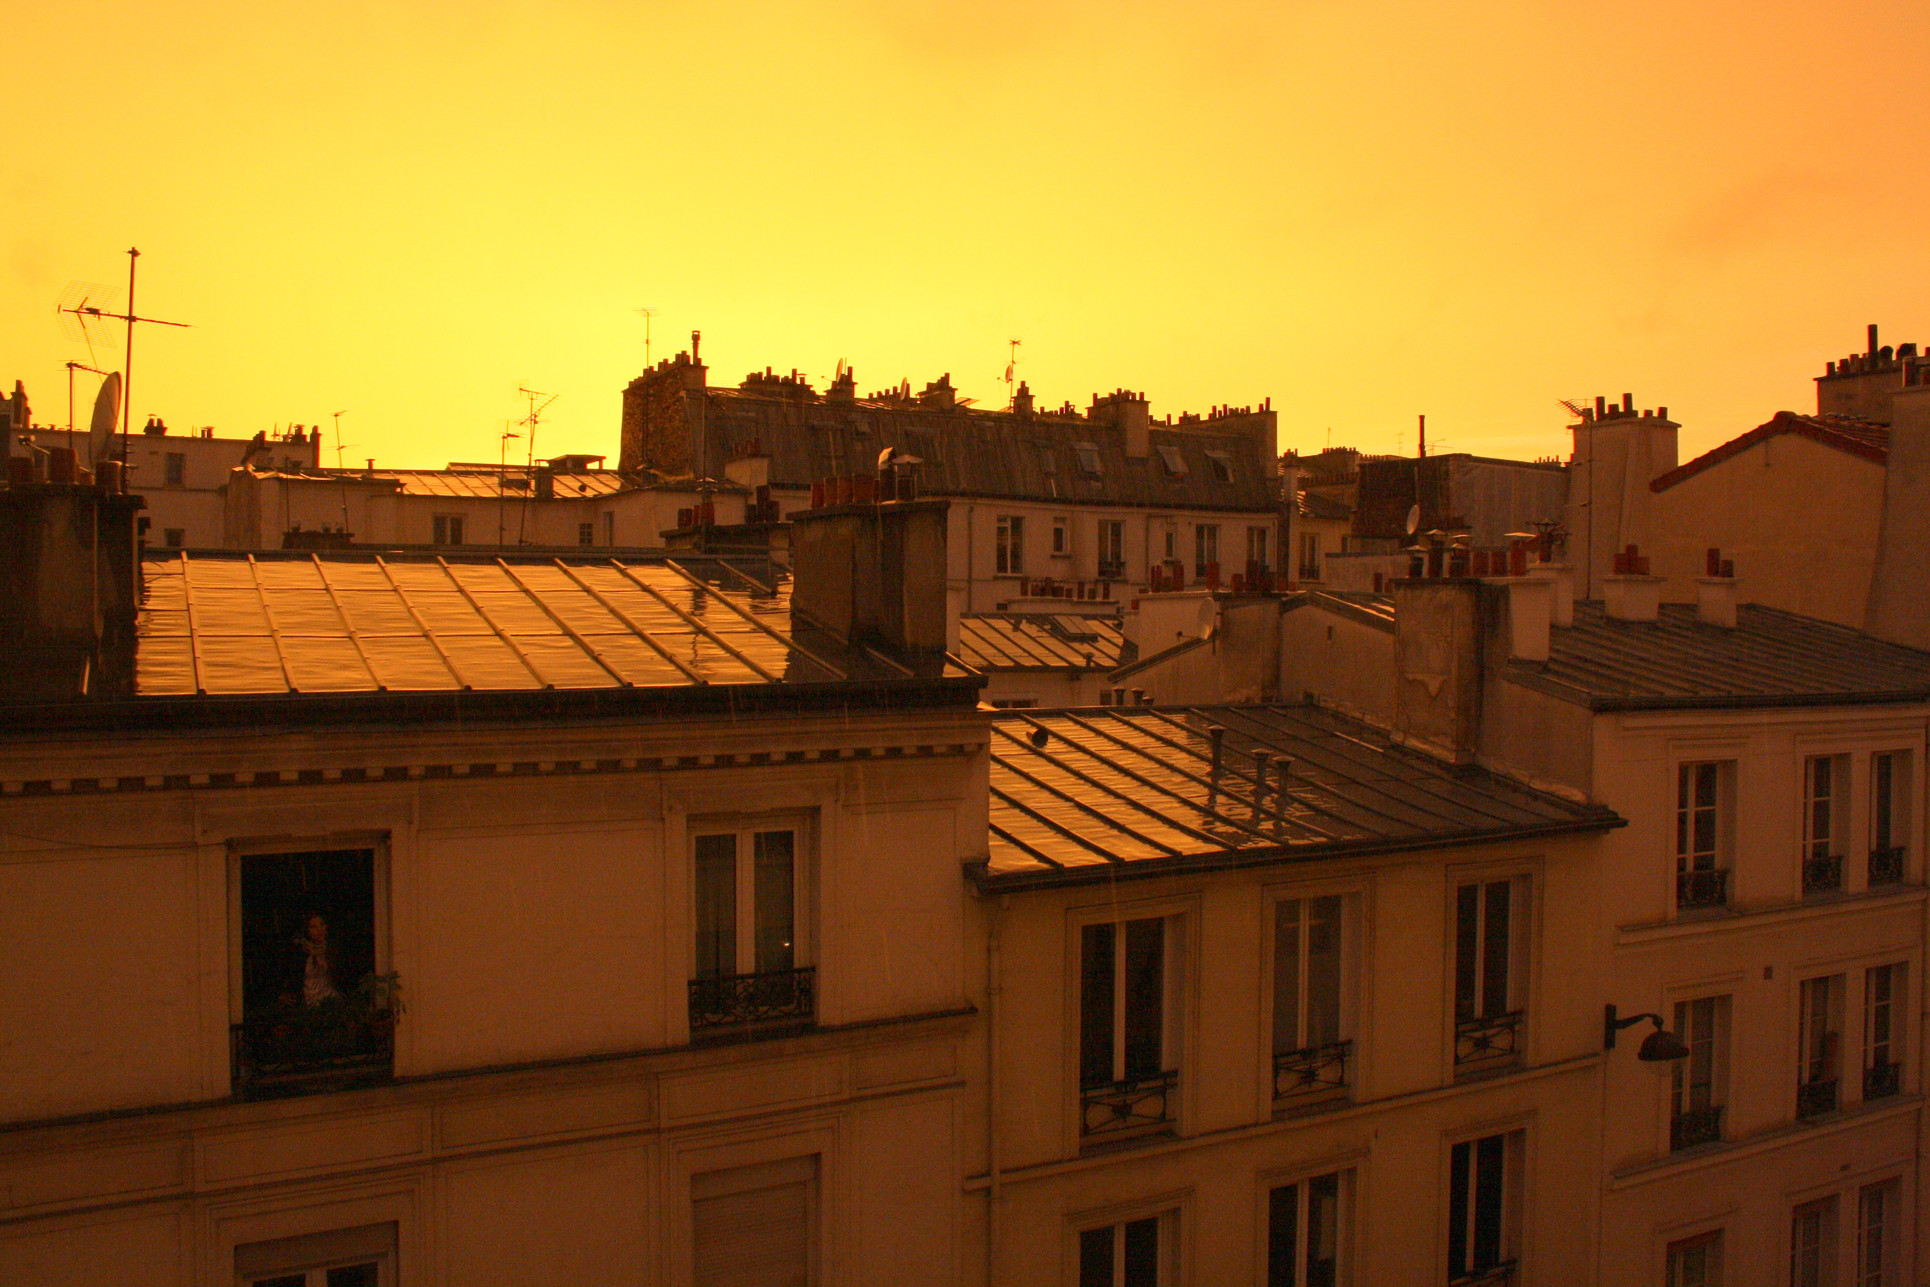 The mellow yellow sunset on Paris roofs